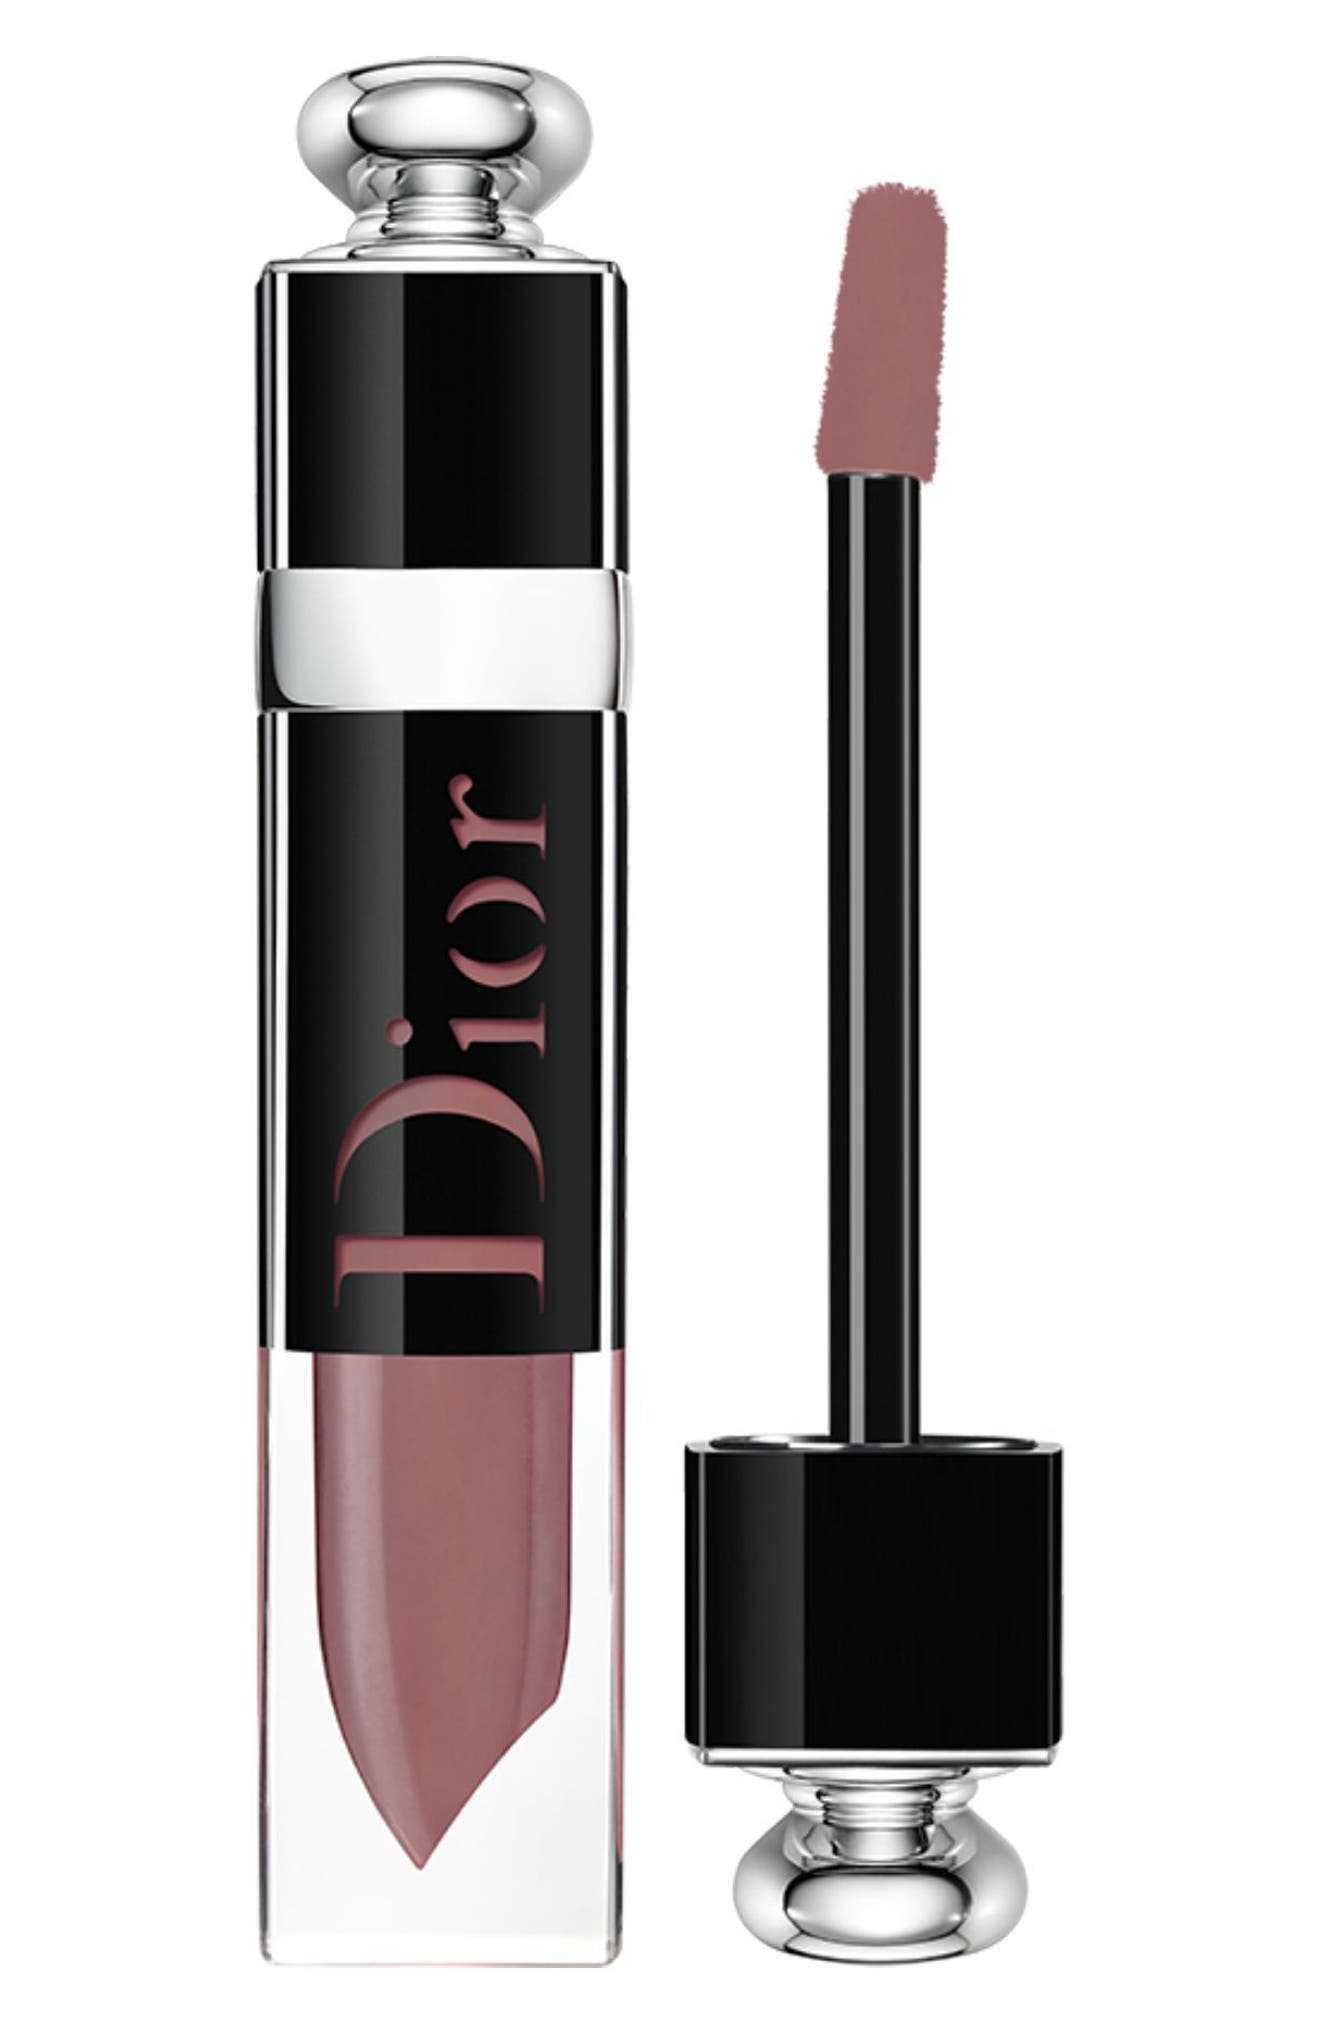 Dior Addict Lip Plumping Lacquer Ink - 516 Dio R Eve /taupe Nude